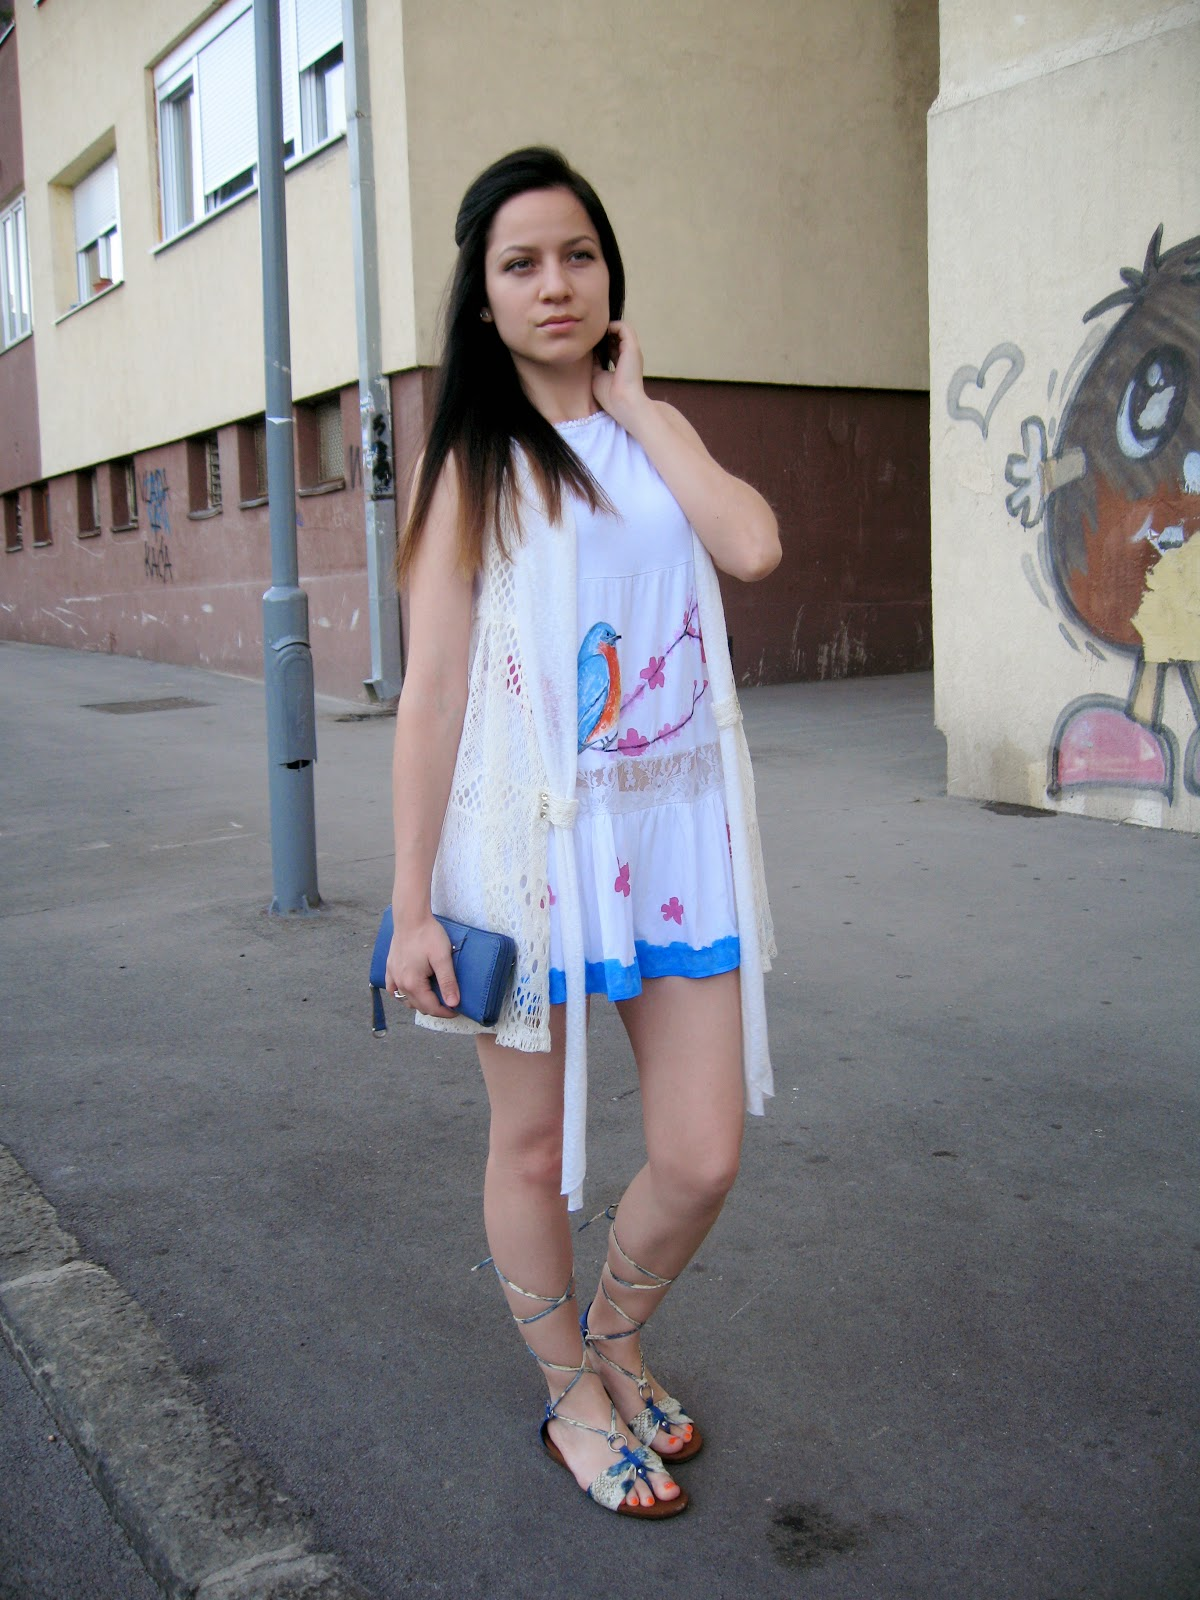 DIY from skirt to a dress, DIY bird print dress skirt, bird and flower cherry blossom print on skirt dress, white crochet vest, white and blue flat strappy sandals, casual look